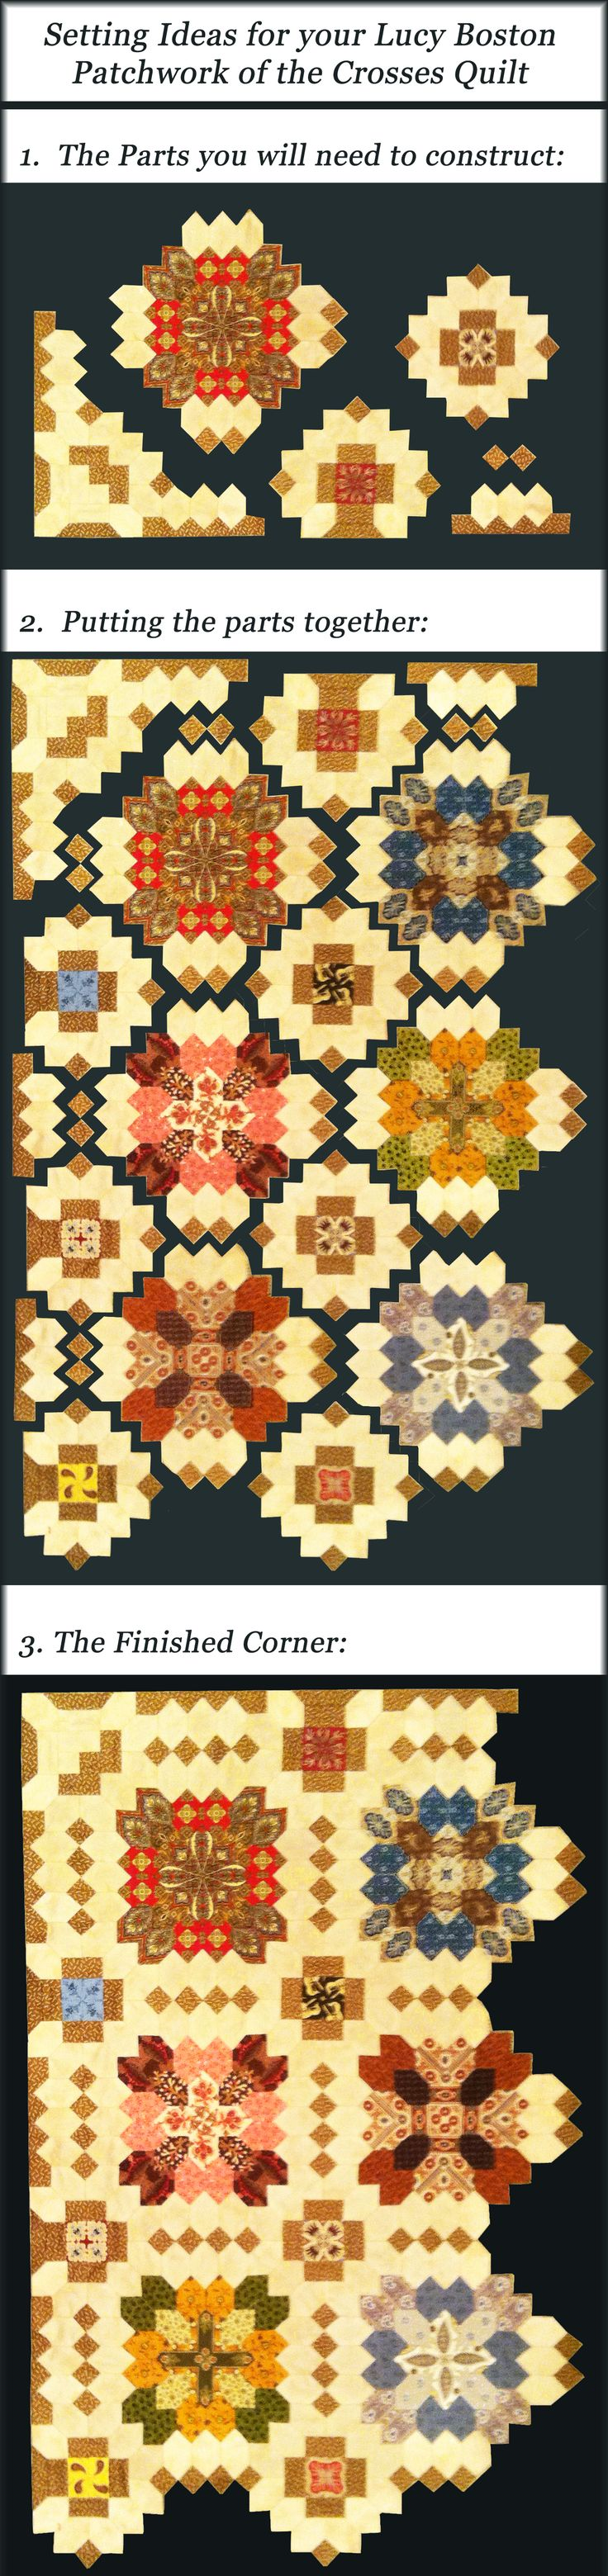 Finished a Corner - setting ideas from Pieceful Gathering Quilt Shop